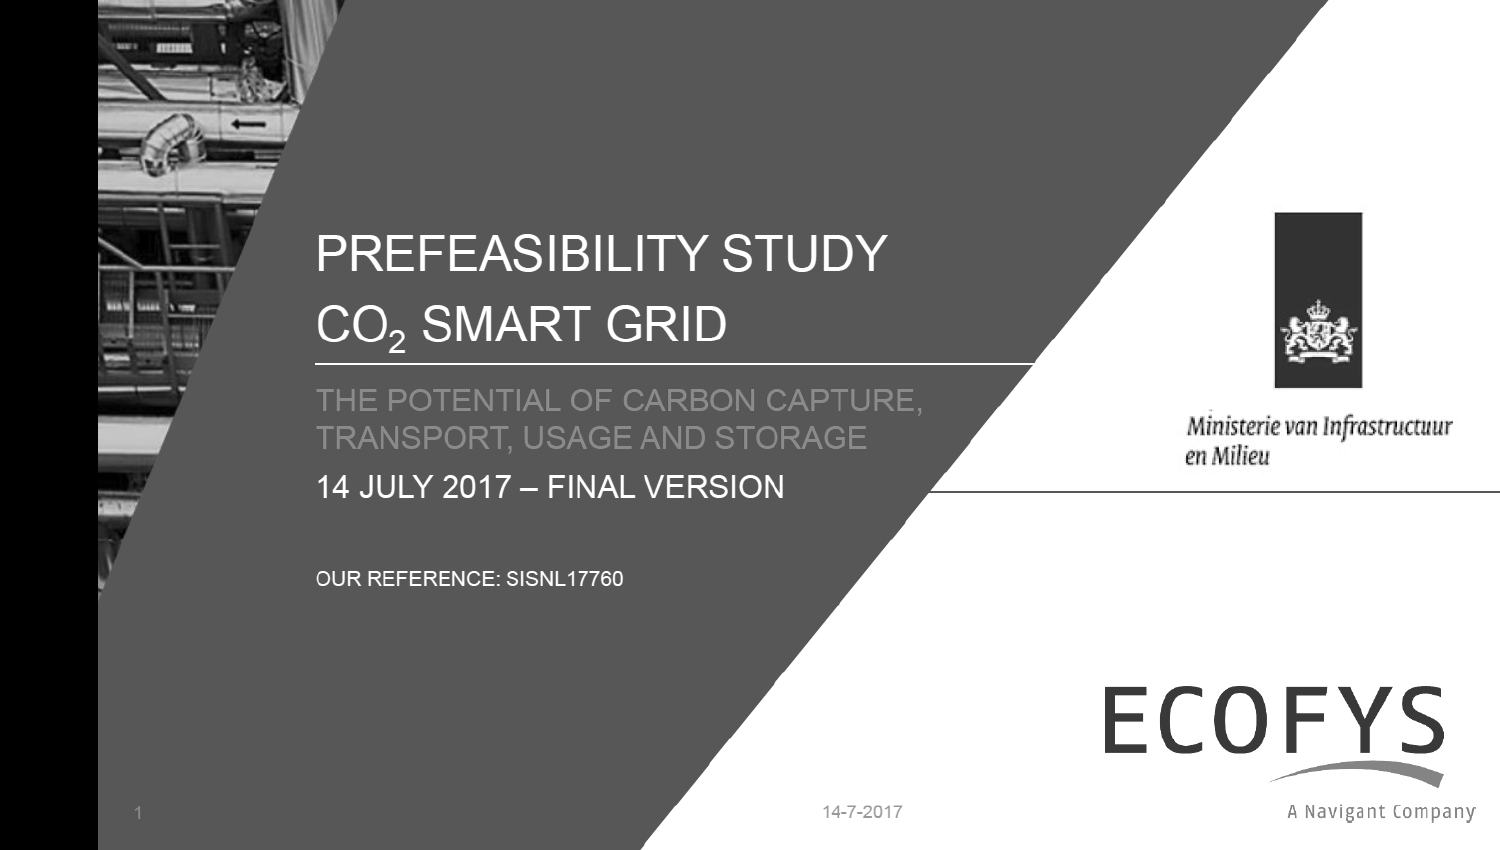 Read more about our results: Prefeasibility report